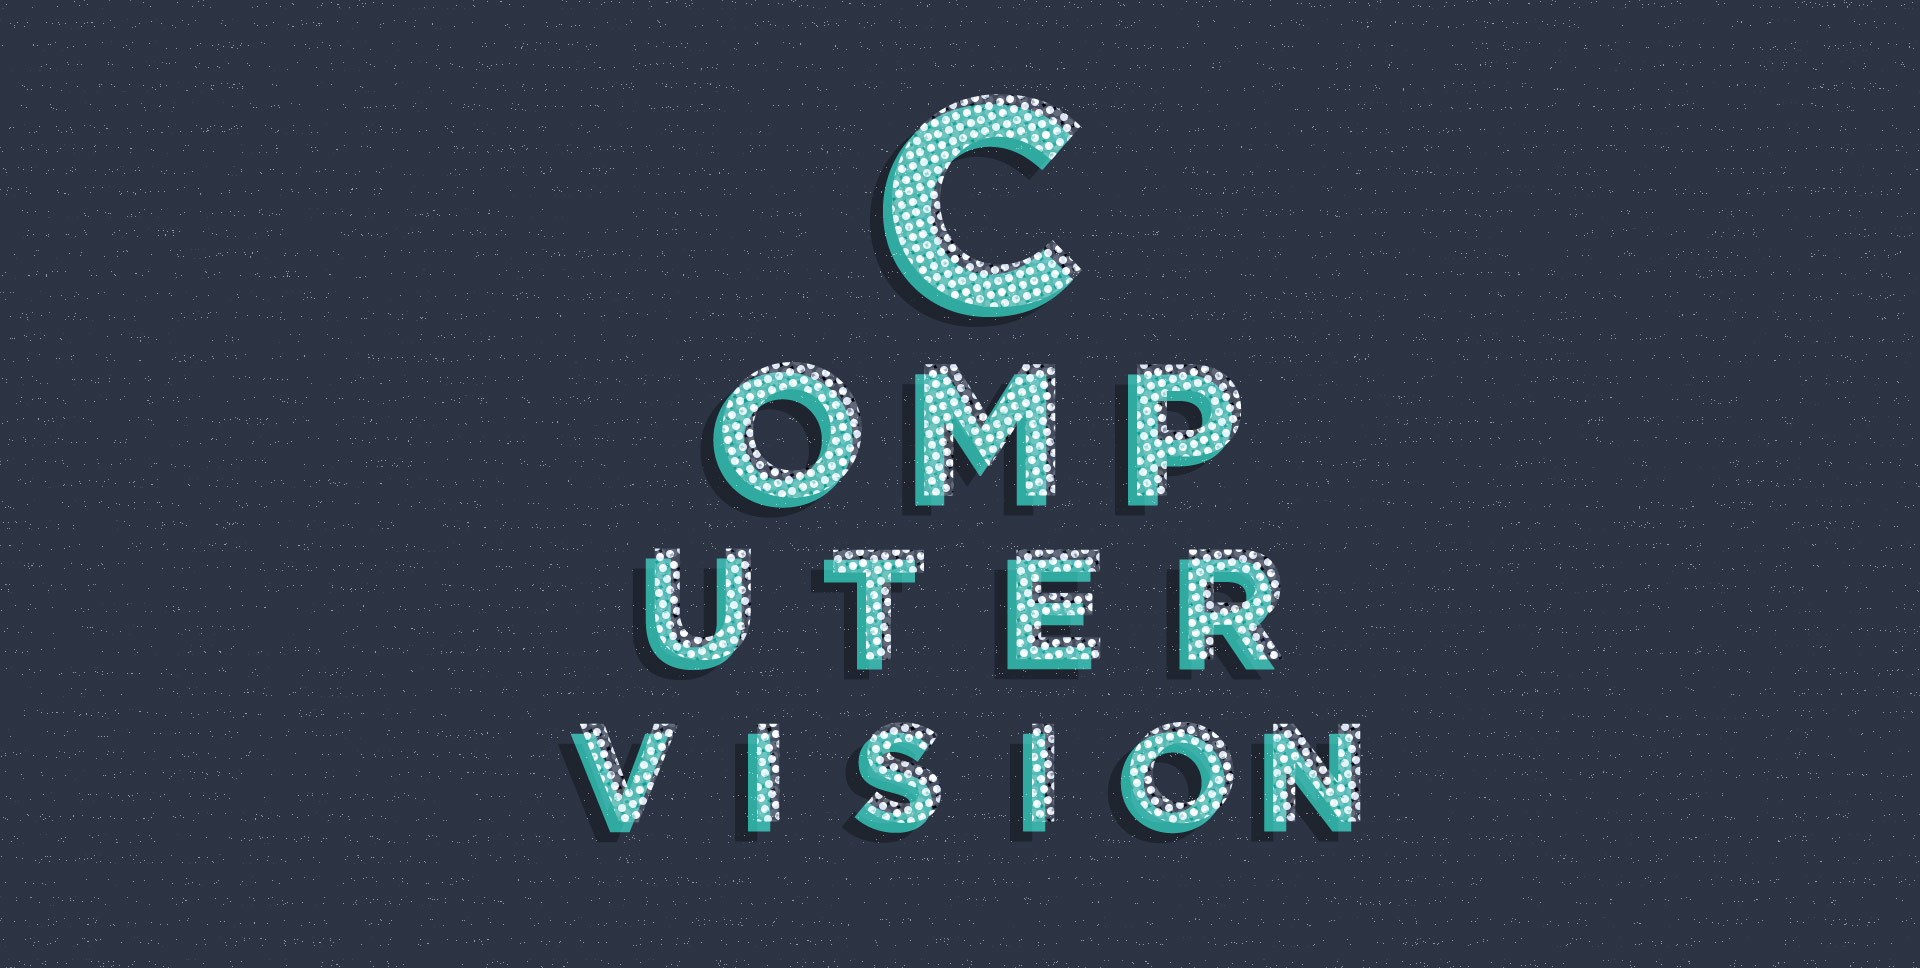 The word 'Computer Vision' arranged like an eye chart test